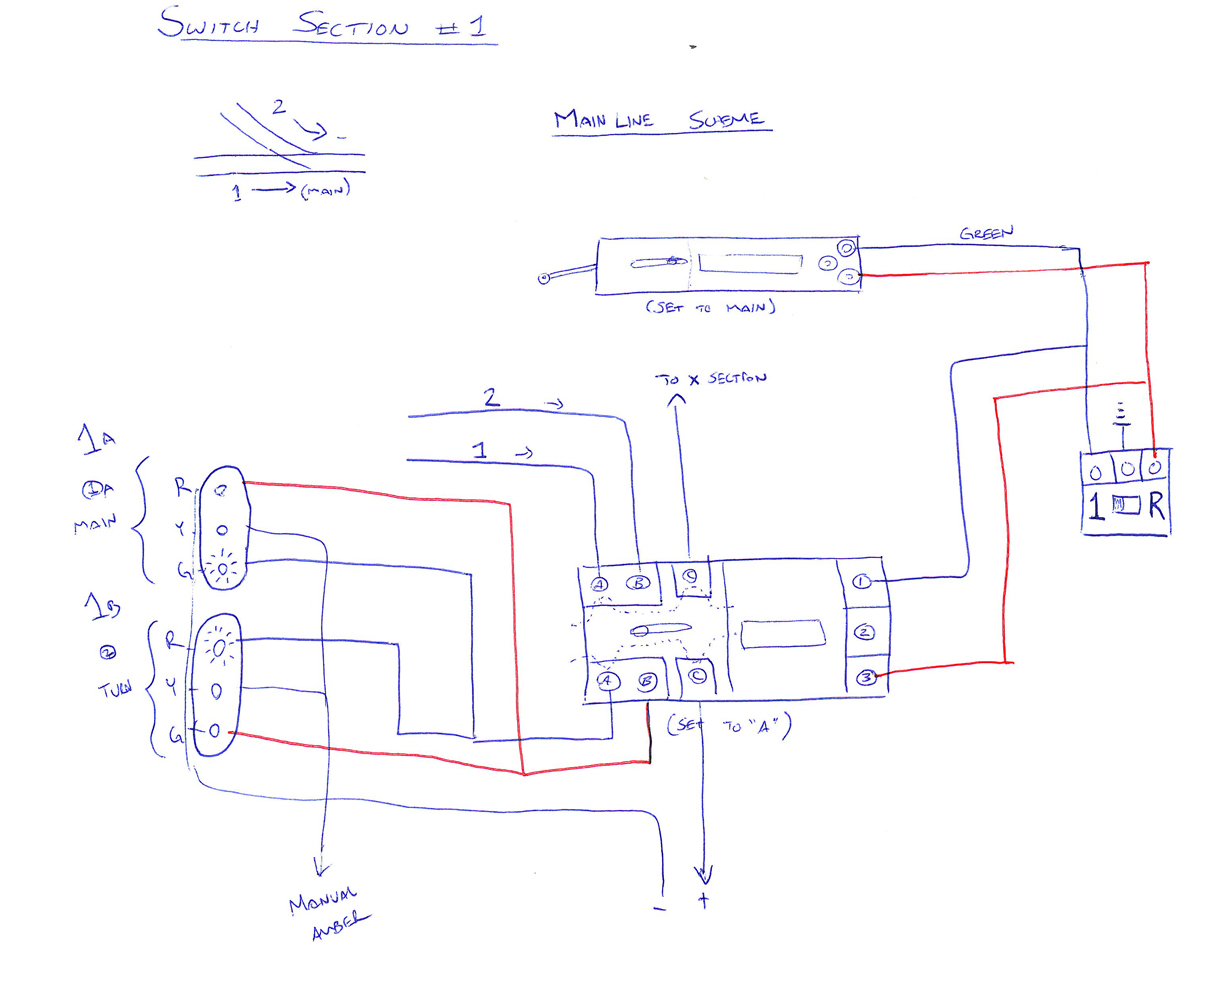 badland winch remote wiring diagram images wiring diagram superwinch get image about wiring diagram